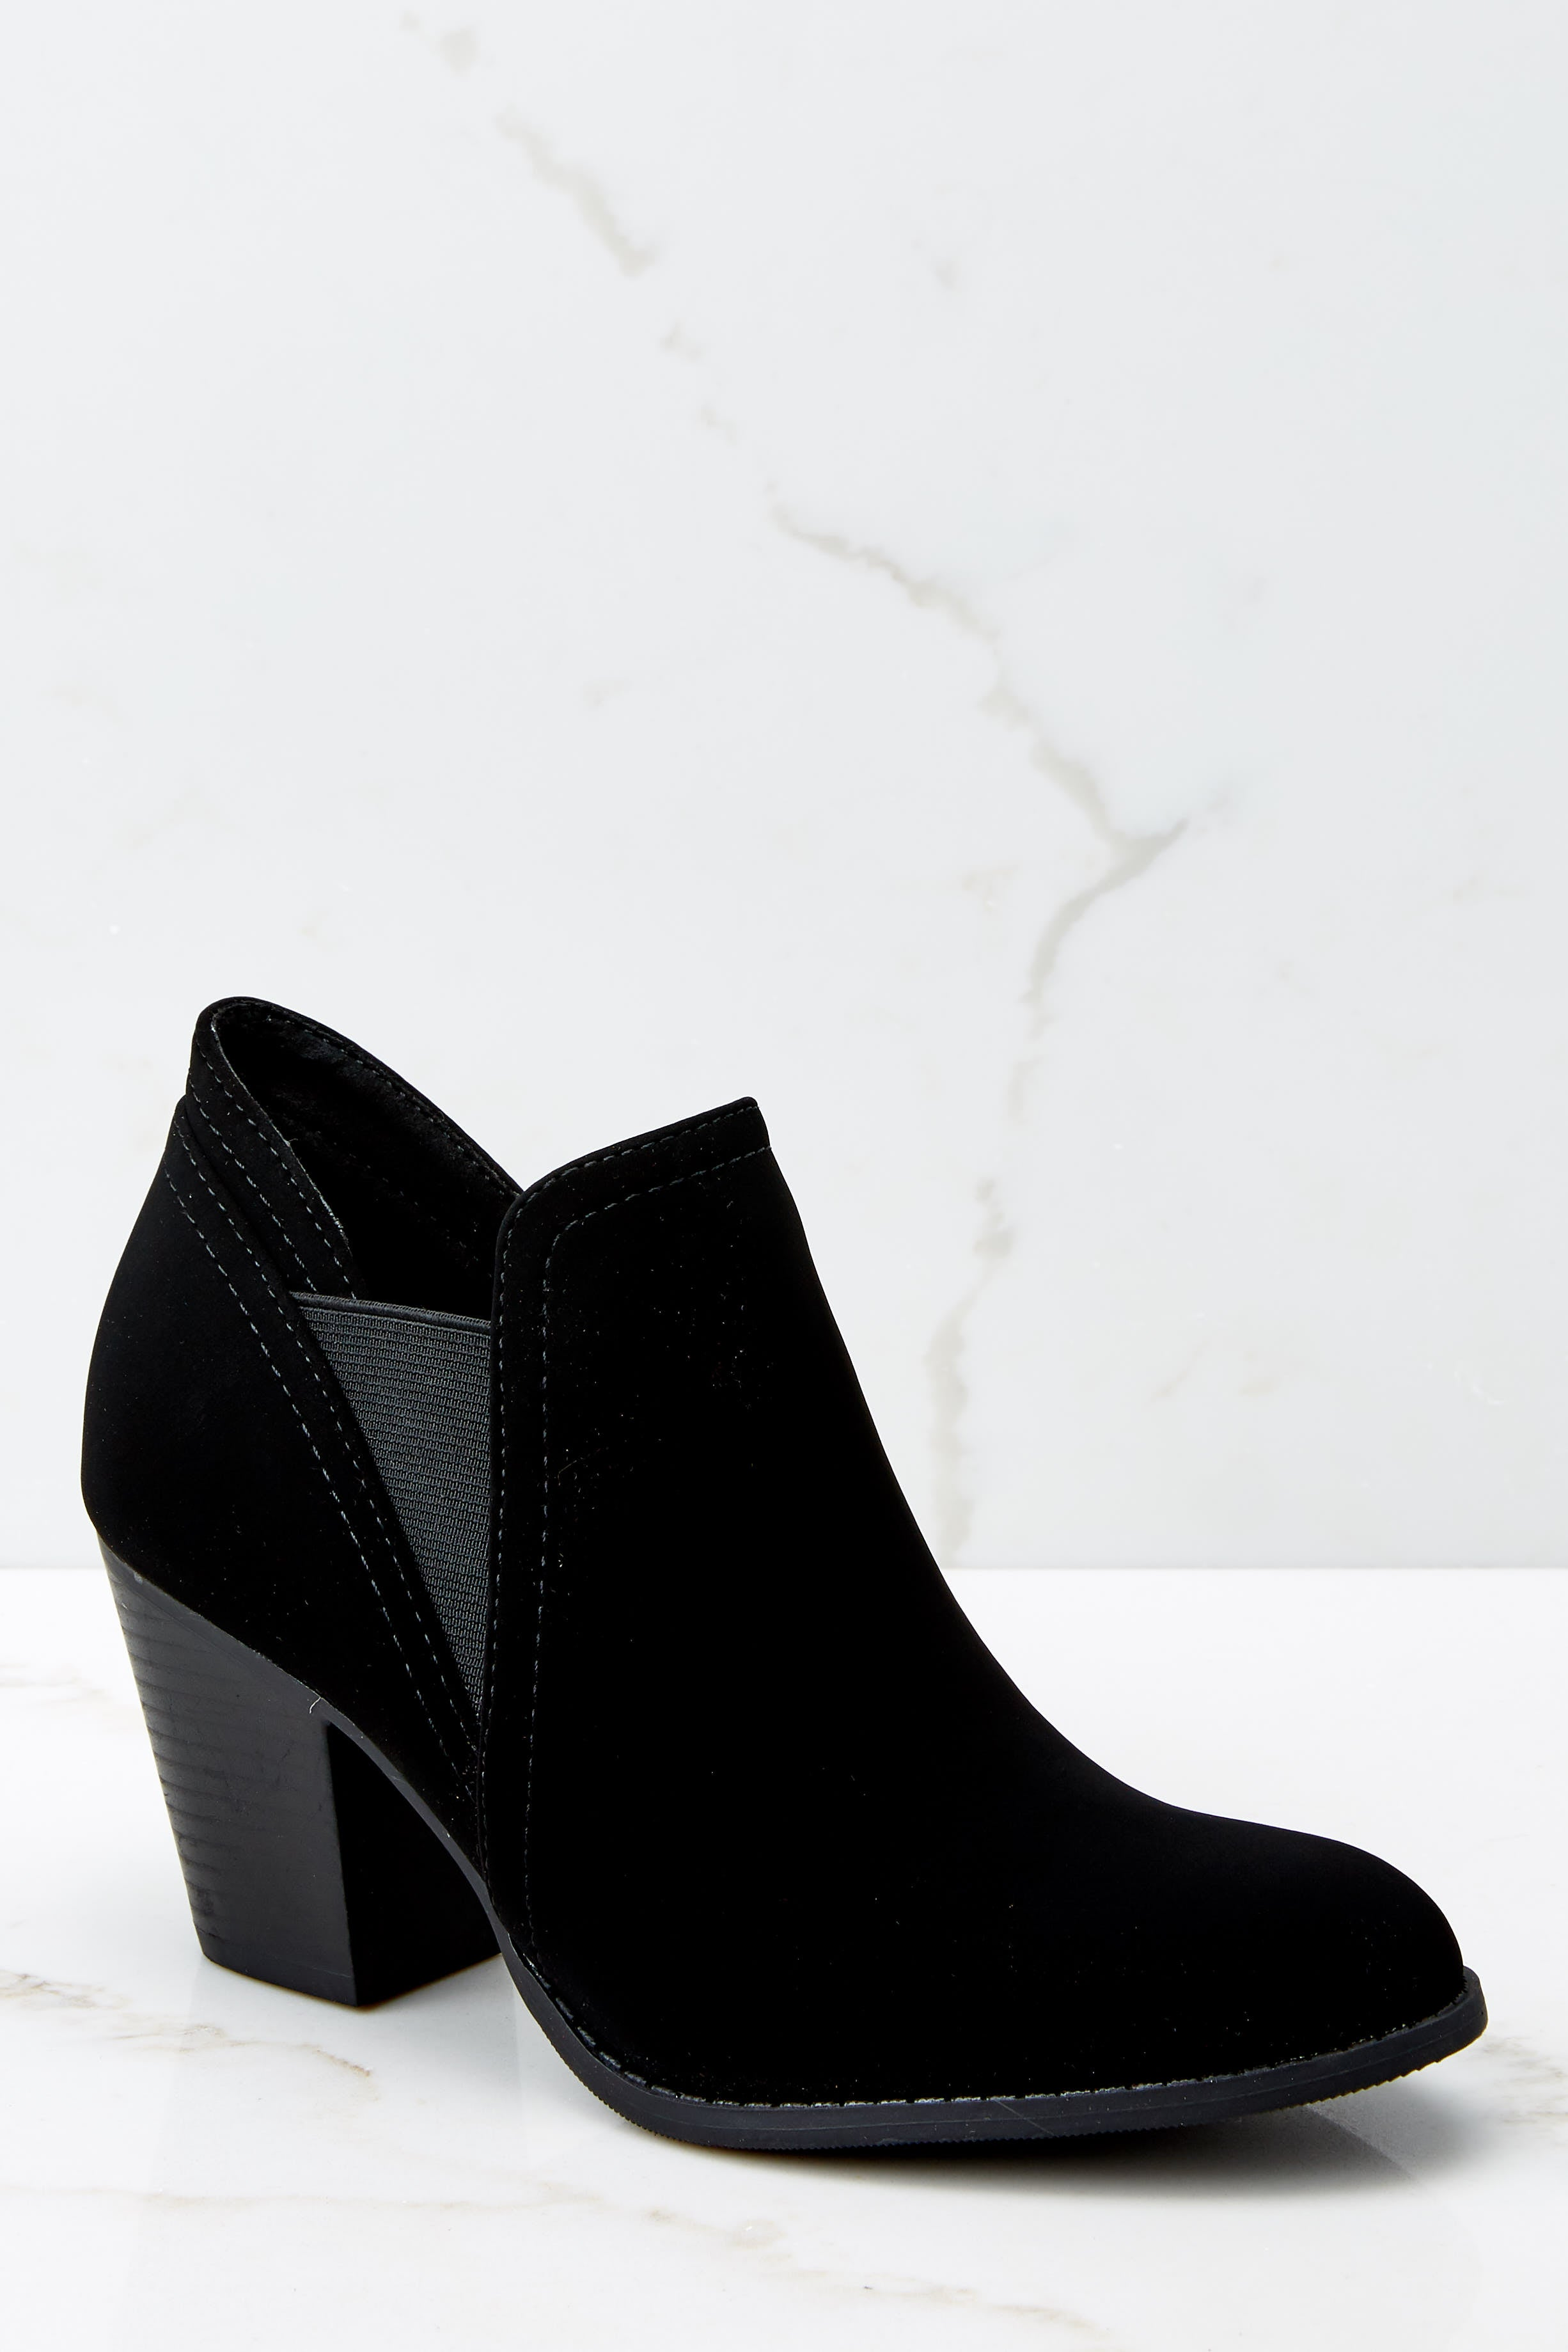 2 Make A Path Black Ankle Booties at reddress.com